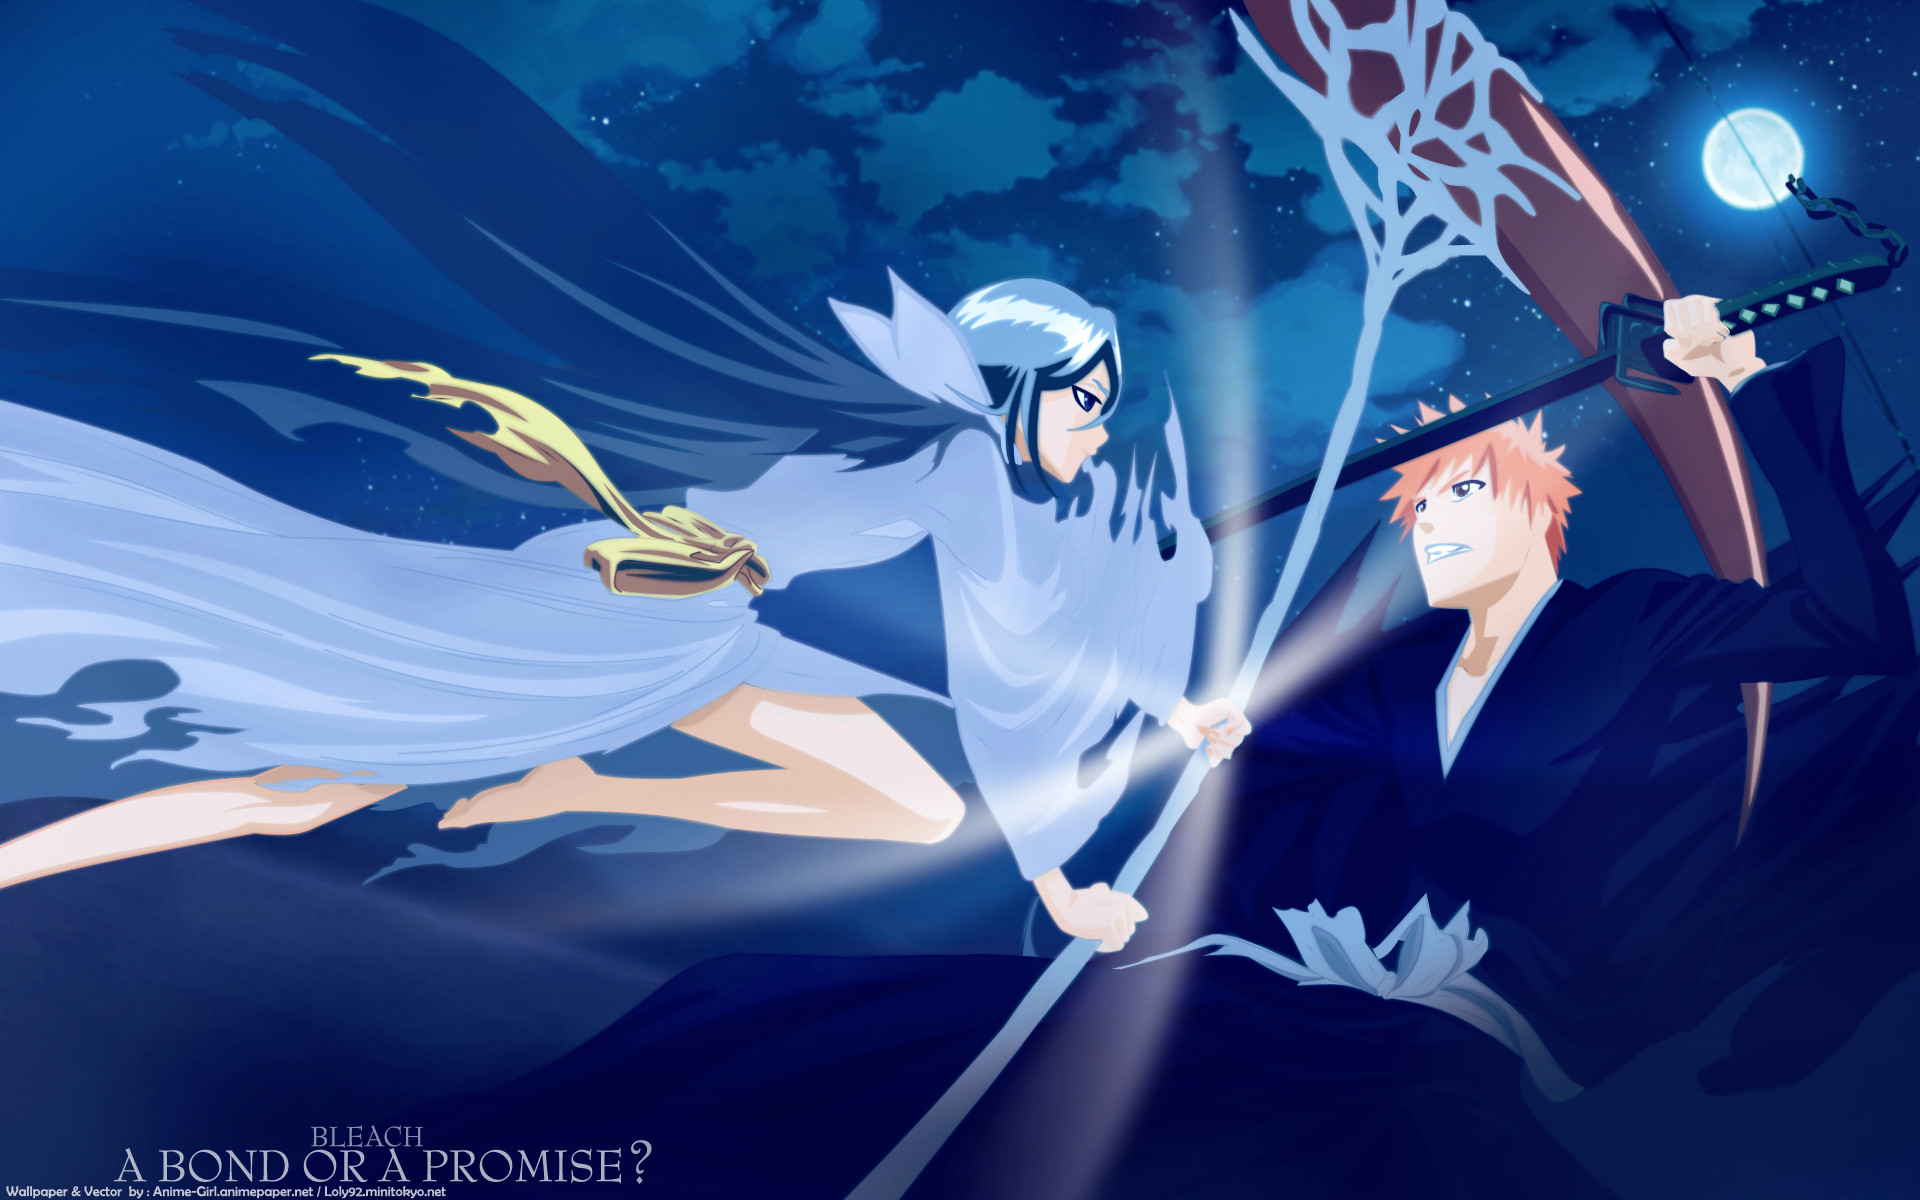 1920x1200 Bleach Forever images Ichigo X Dark Rukia HD wallpaper and background photos